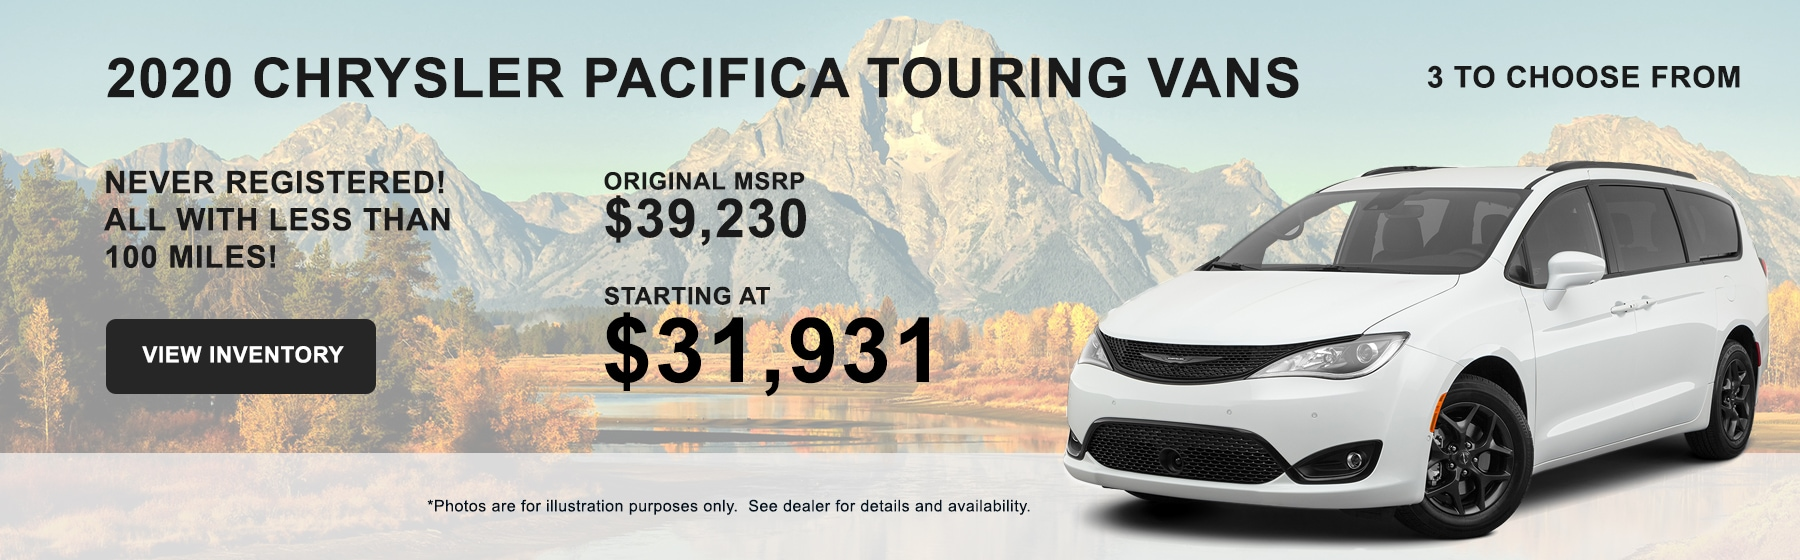 Buy 2020 Chrysler Pacifica Touring Vans starting at $31,931